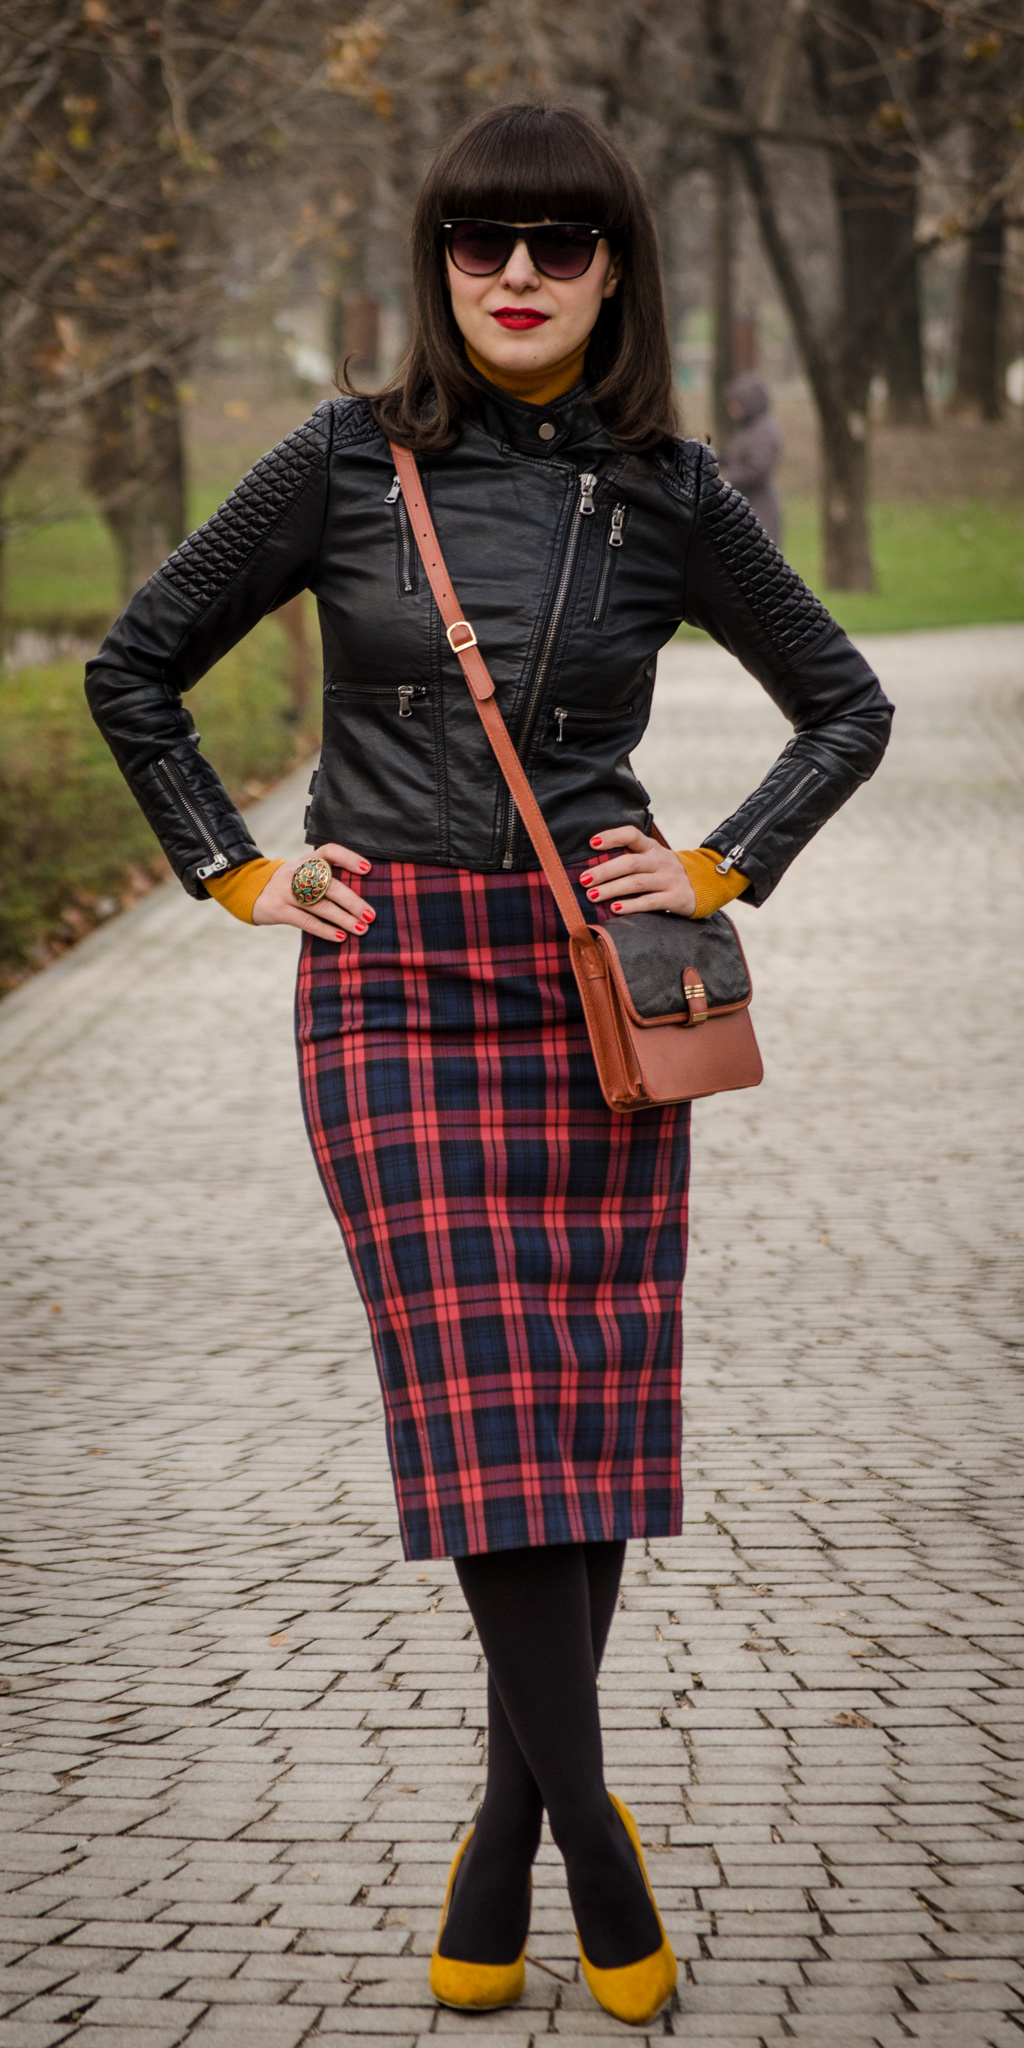 rock leather jacket high waist tartan skirt burnt orange turtleneck mustard high heels fall bangs hair biker look zara new yorker poema